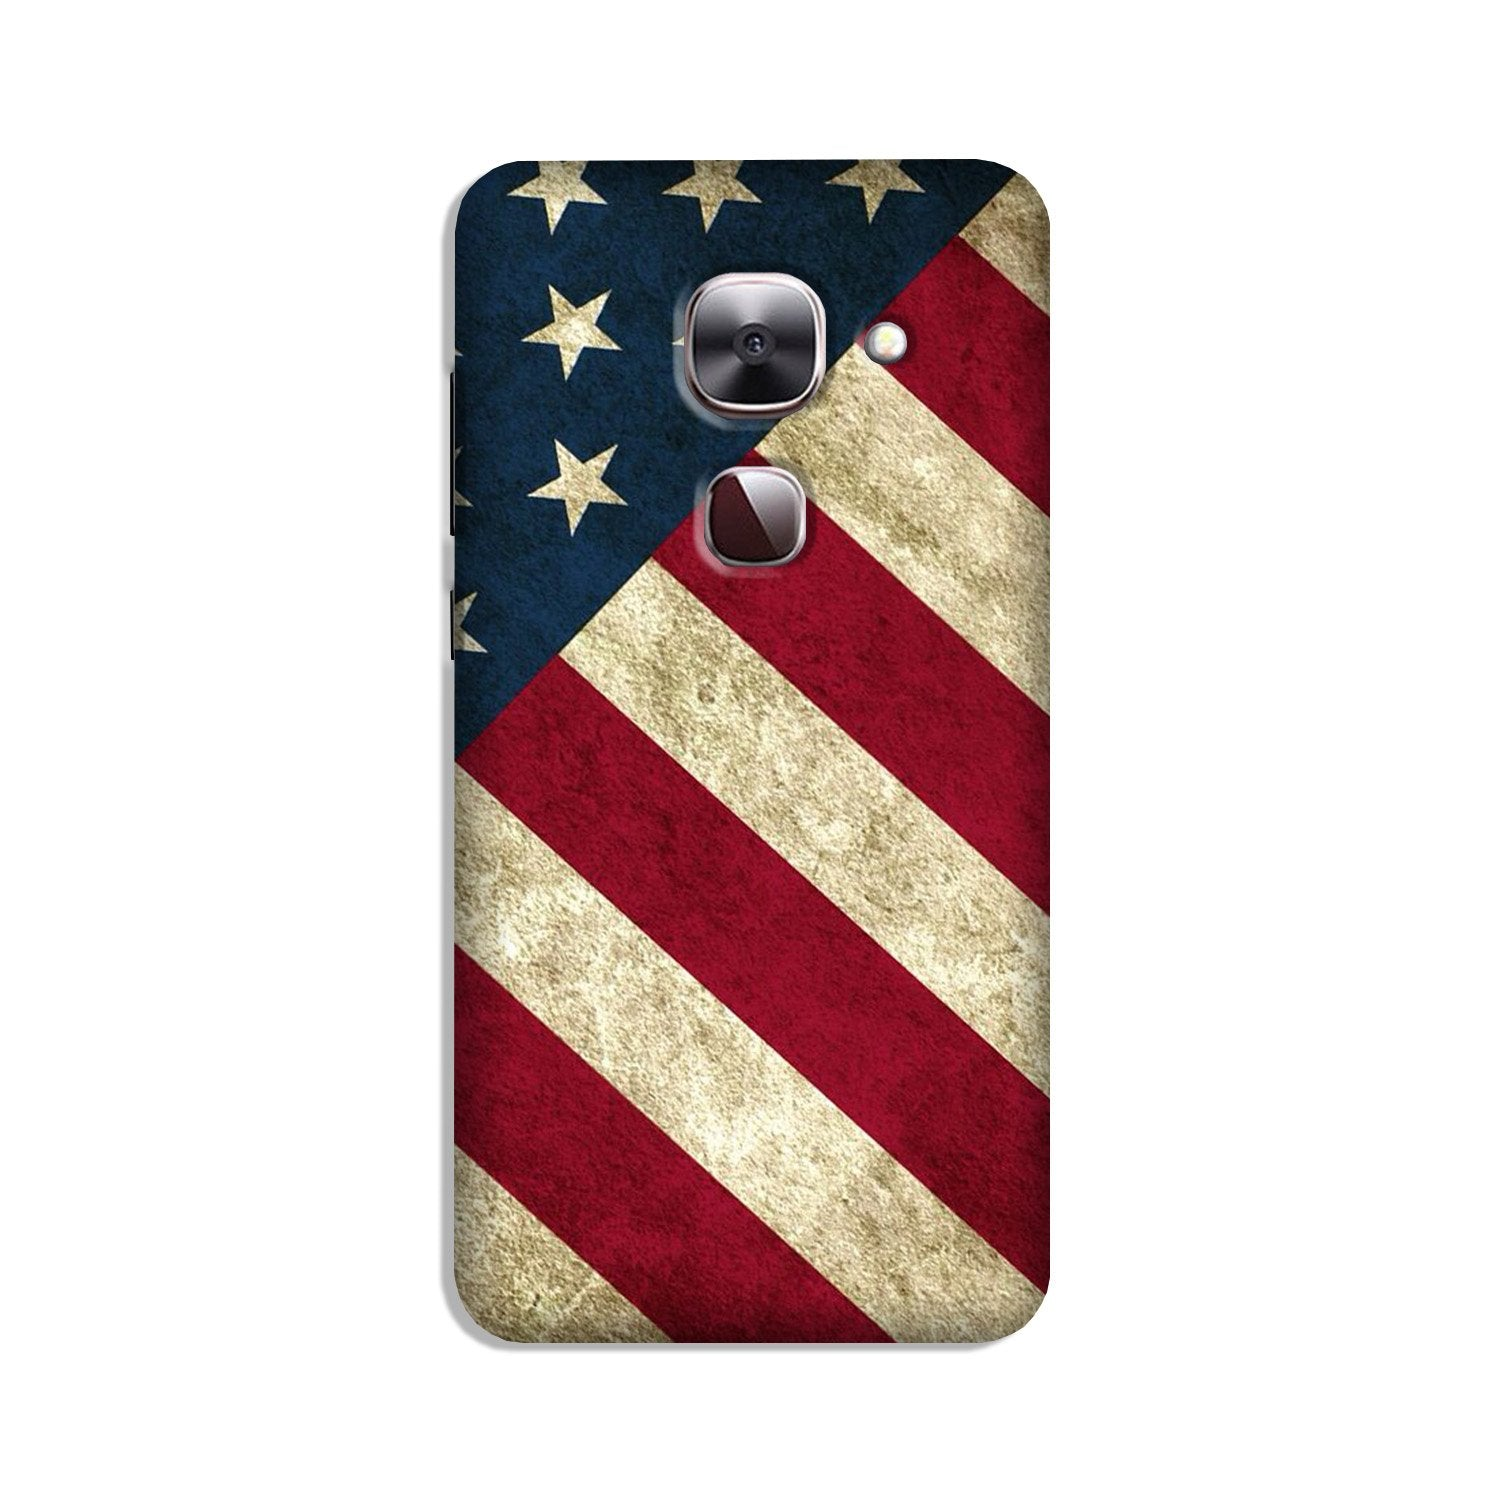 America Case for LeEco le 2s